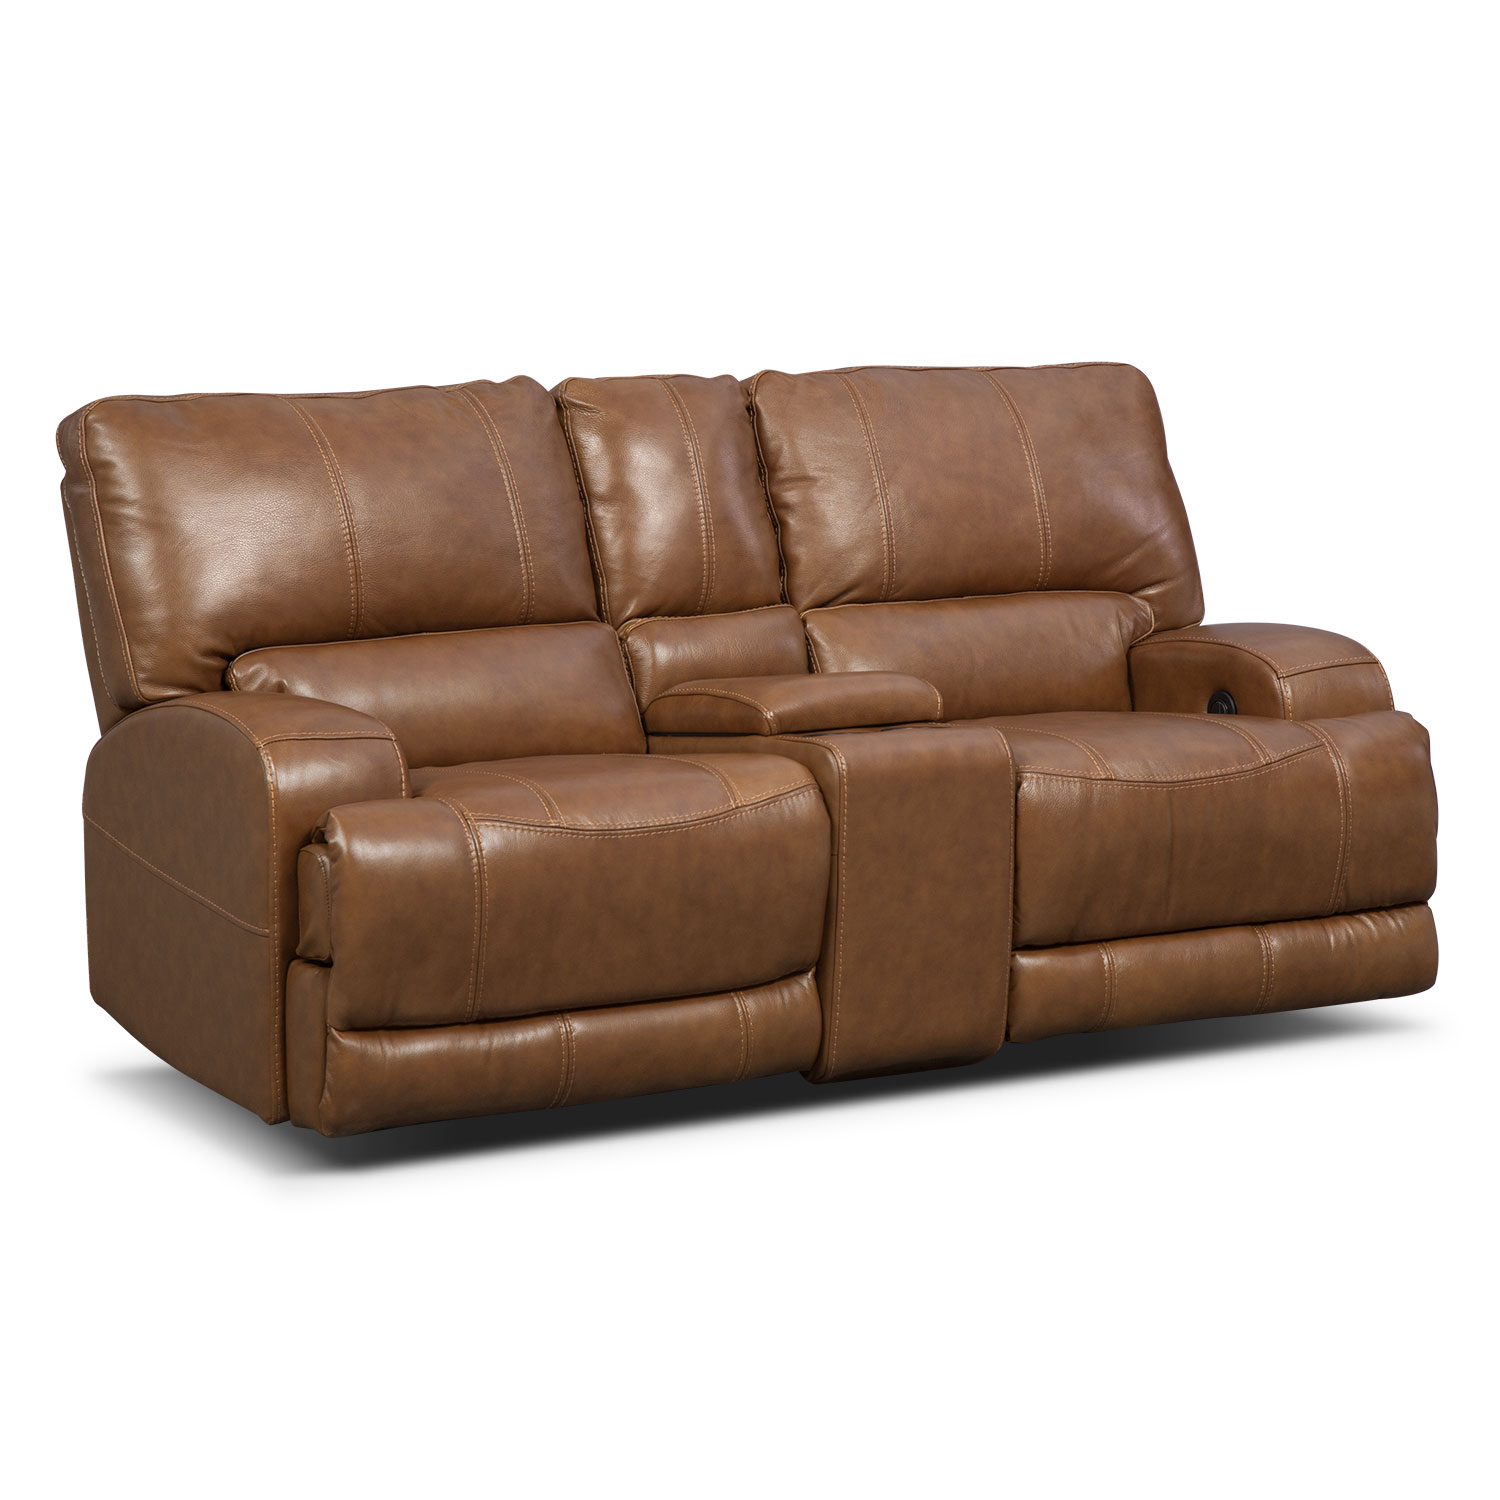 Living Room Furniture - Barton Camel Living Room Power Reclining Loveseat with Console